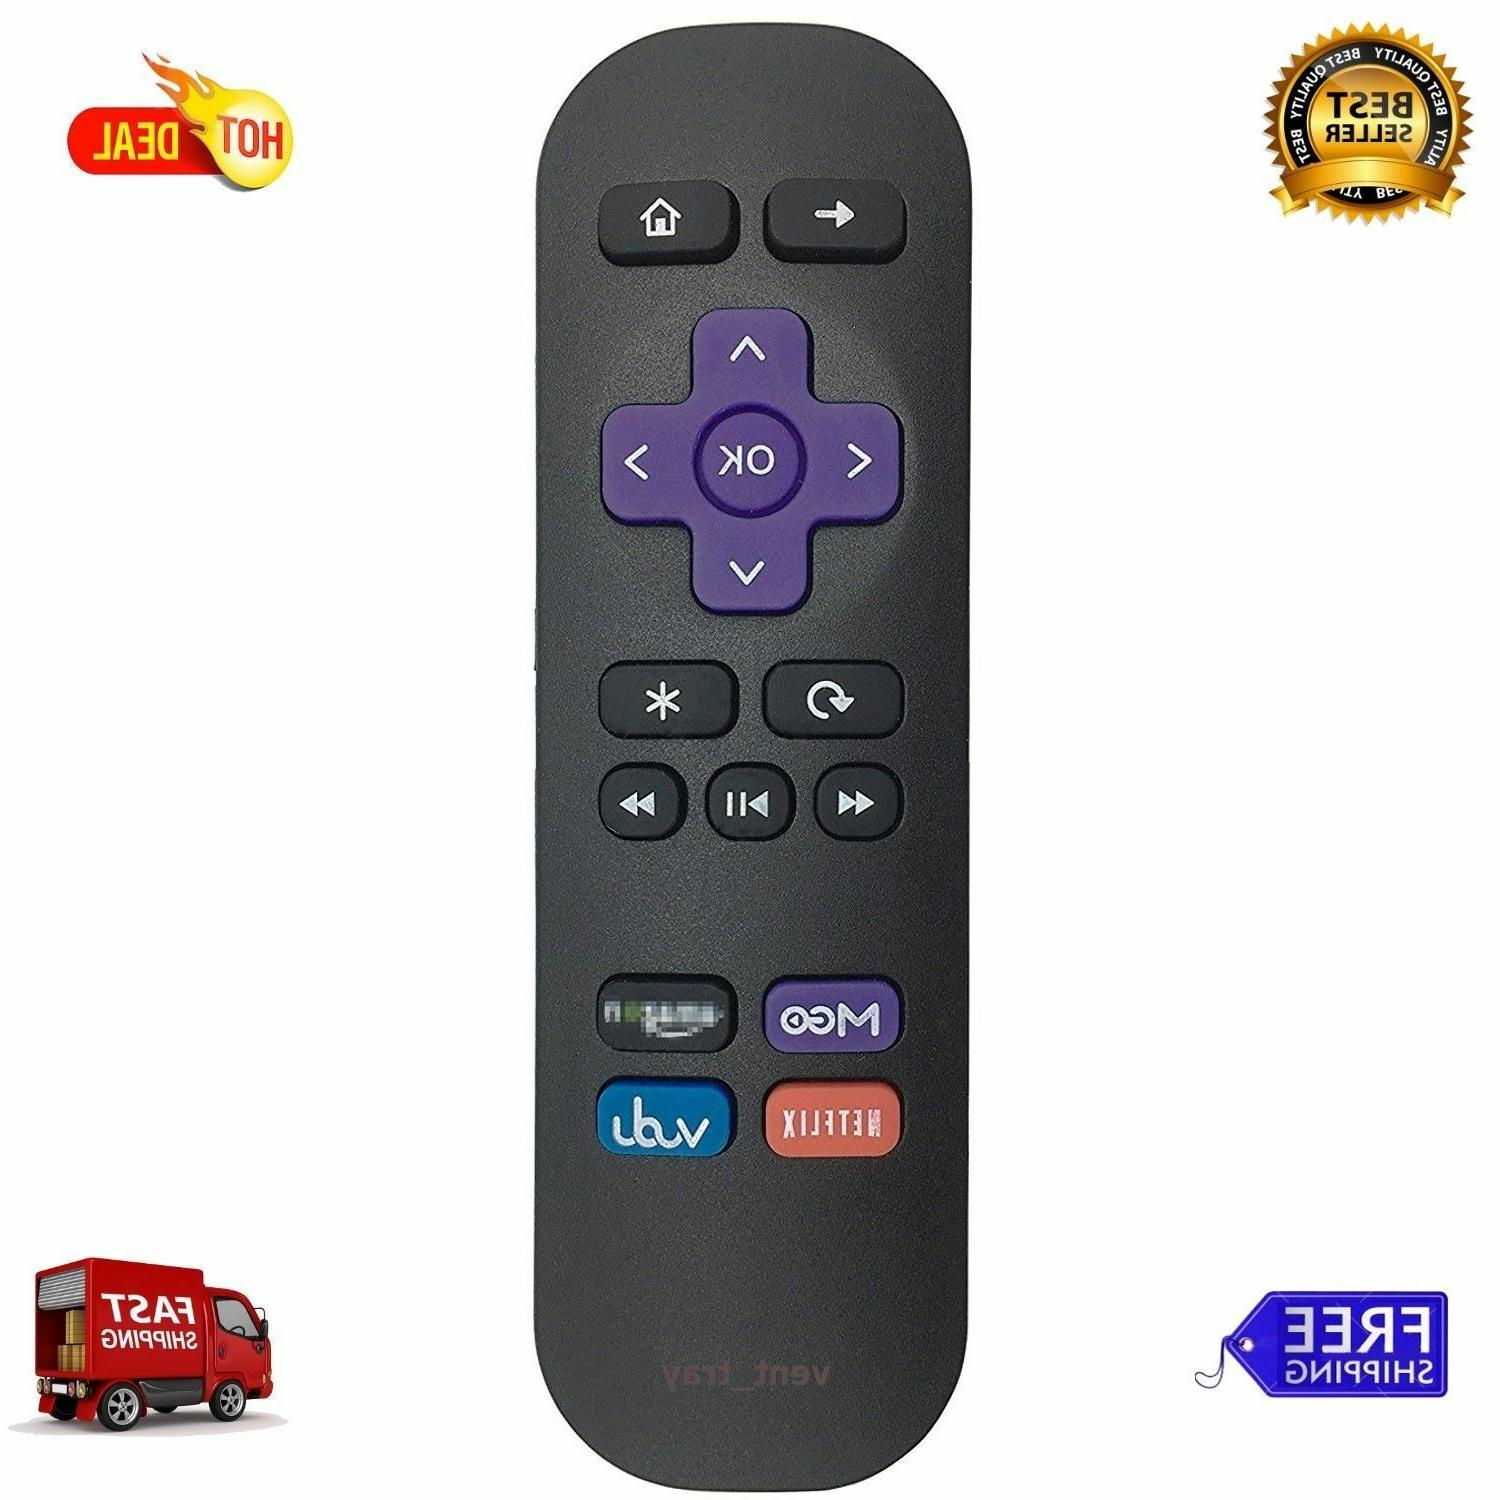 replacement ir remote